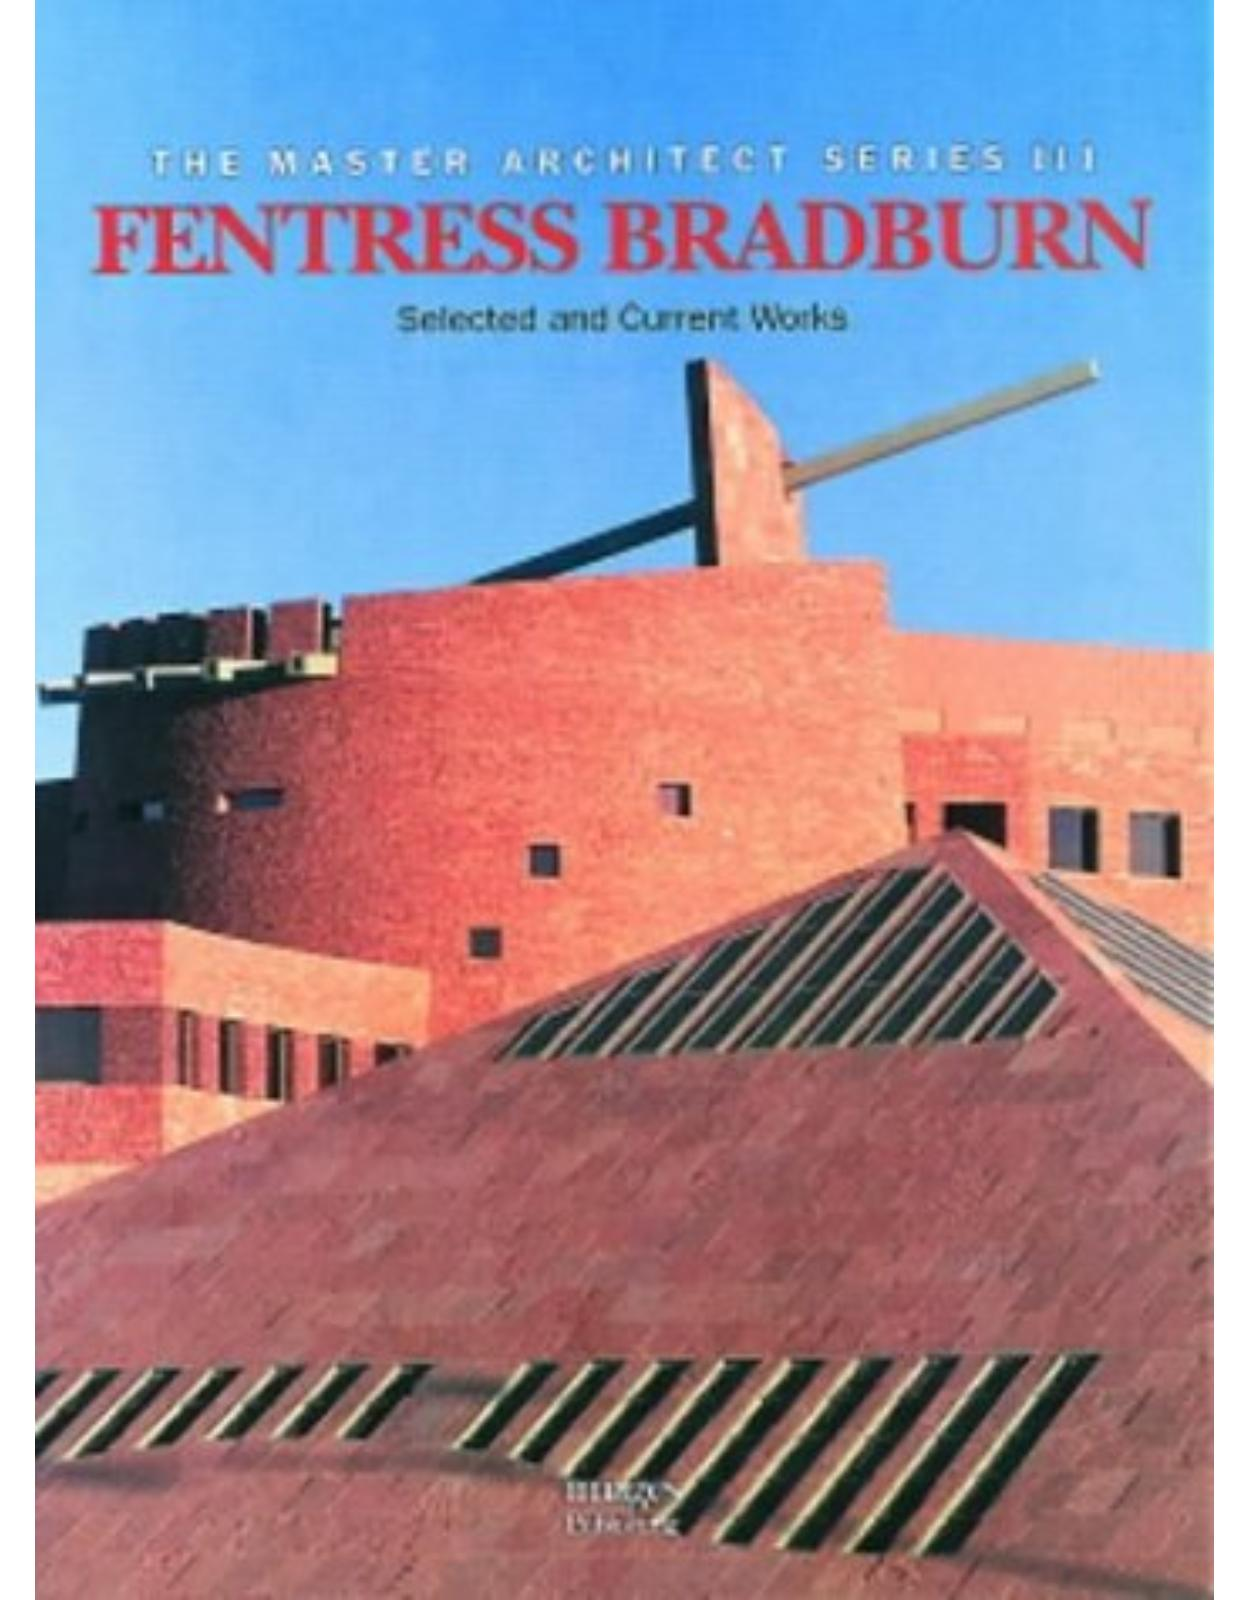 Fentress Bradburn: Selected and Current Works (Master Architect Series III)